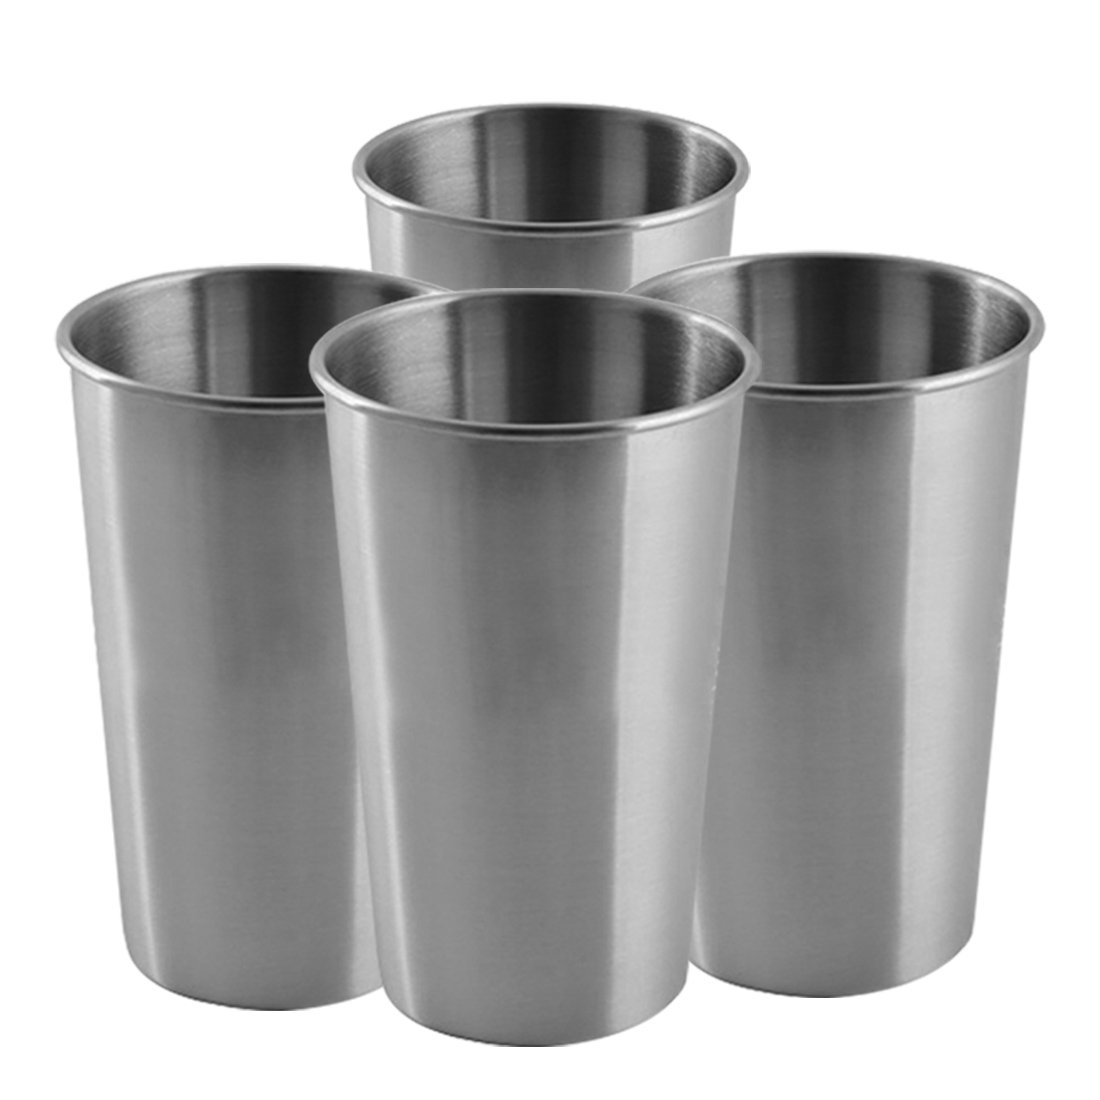 Stainless Steel Cup for Kids,12oz Set of 4 Food Grade BPA Free Stacking Tumbler,Unbreakable Metal Pint Mugs,Unbreakable Drinking/Water/Bear/Coffee Glass,Great for Indoors, Outdoors, Camping